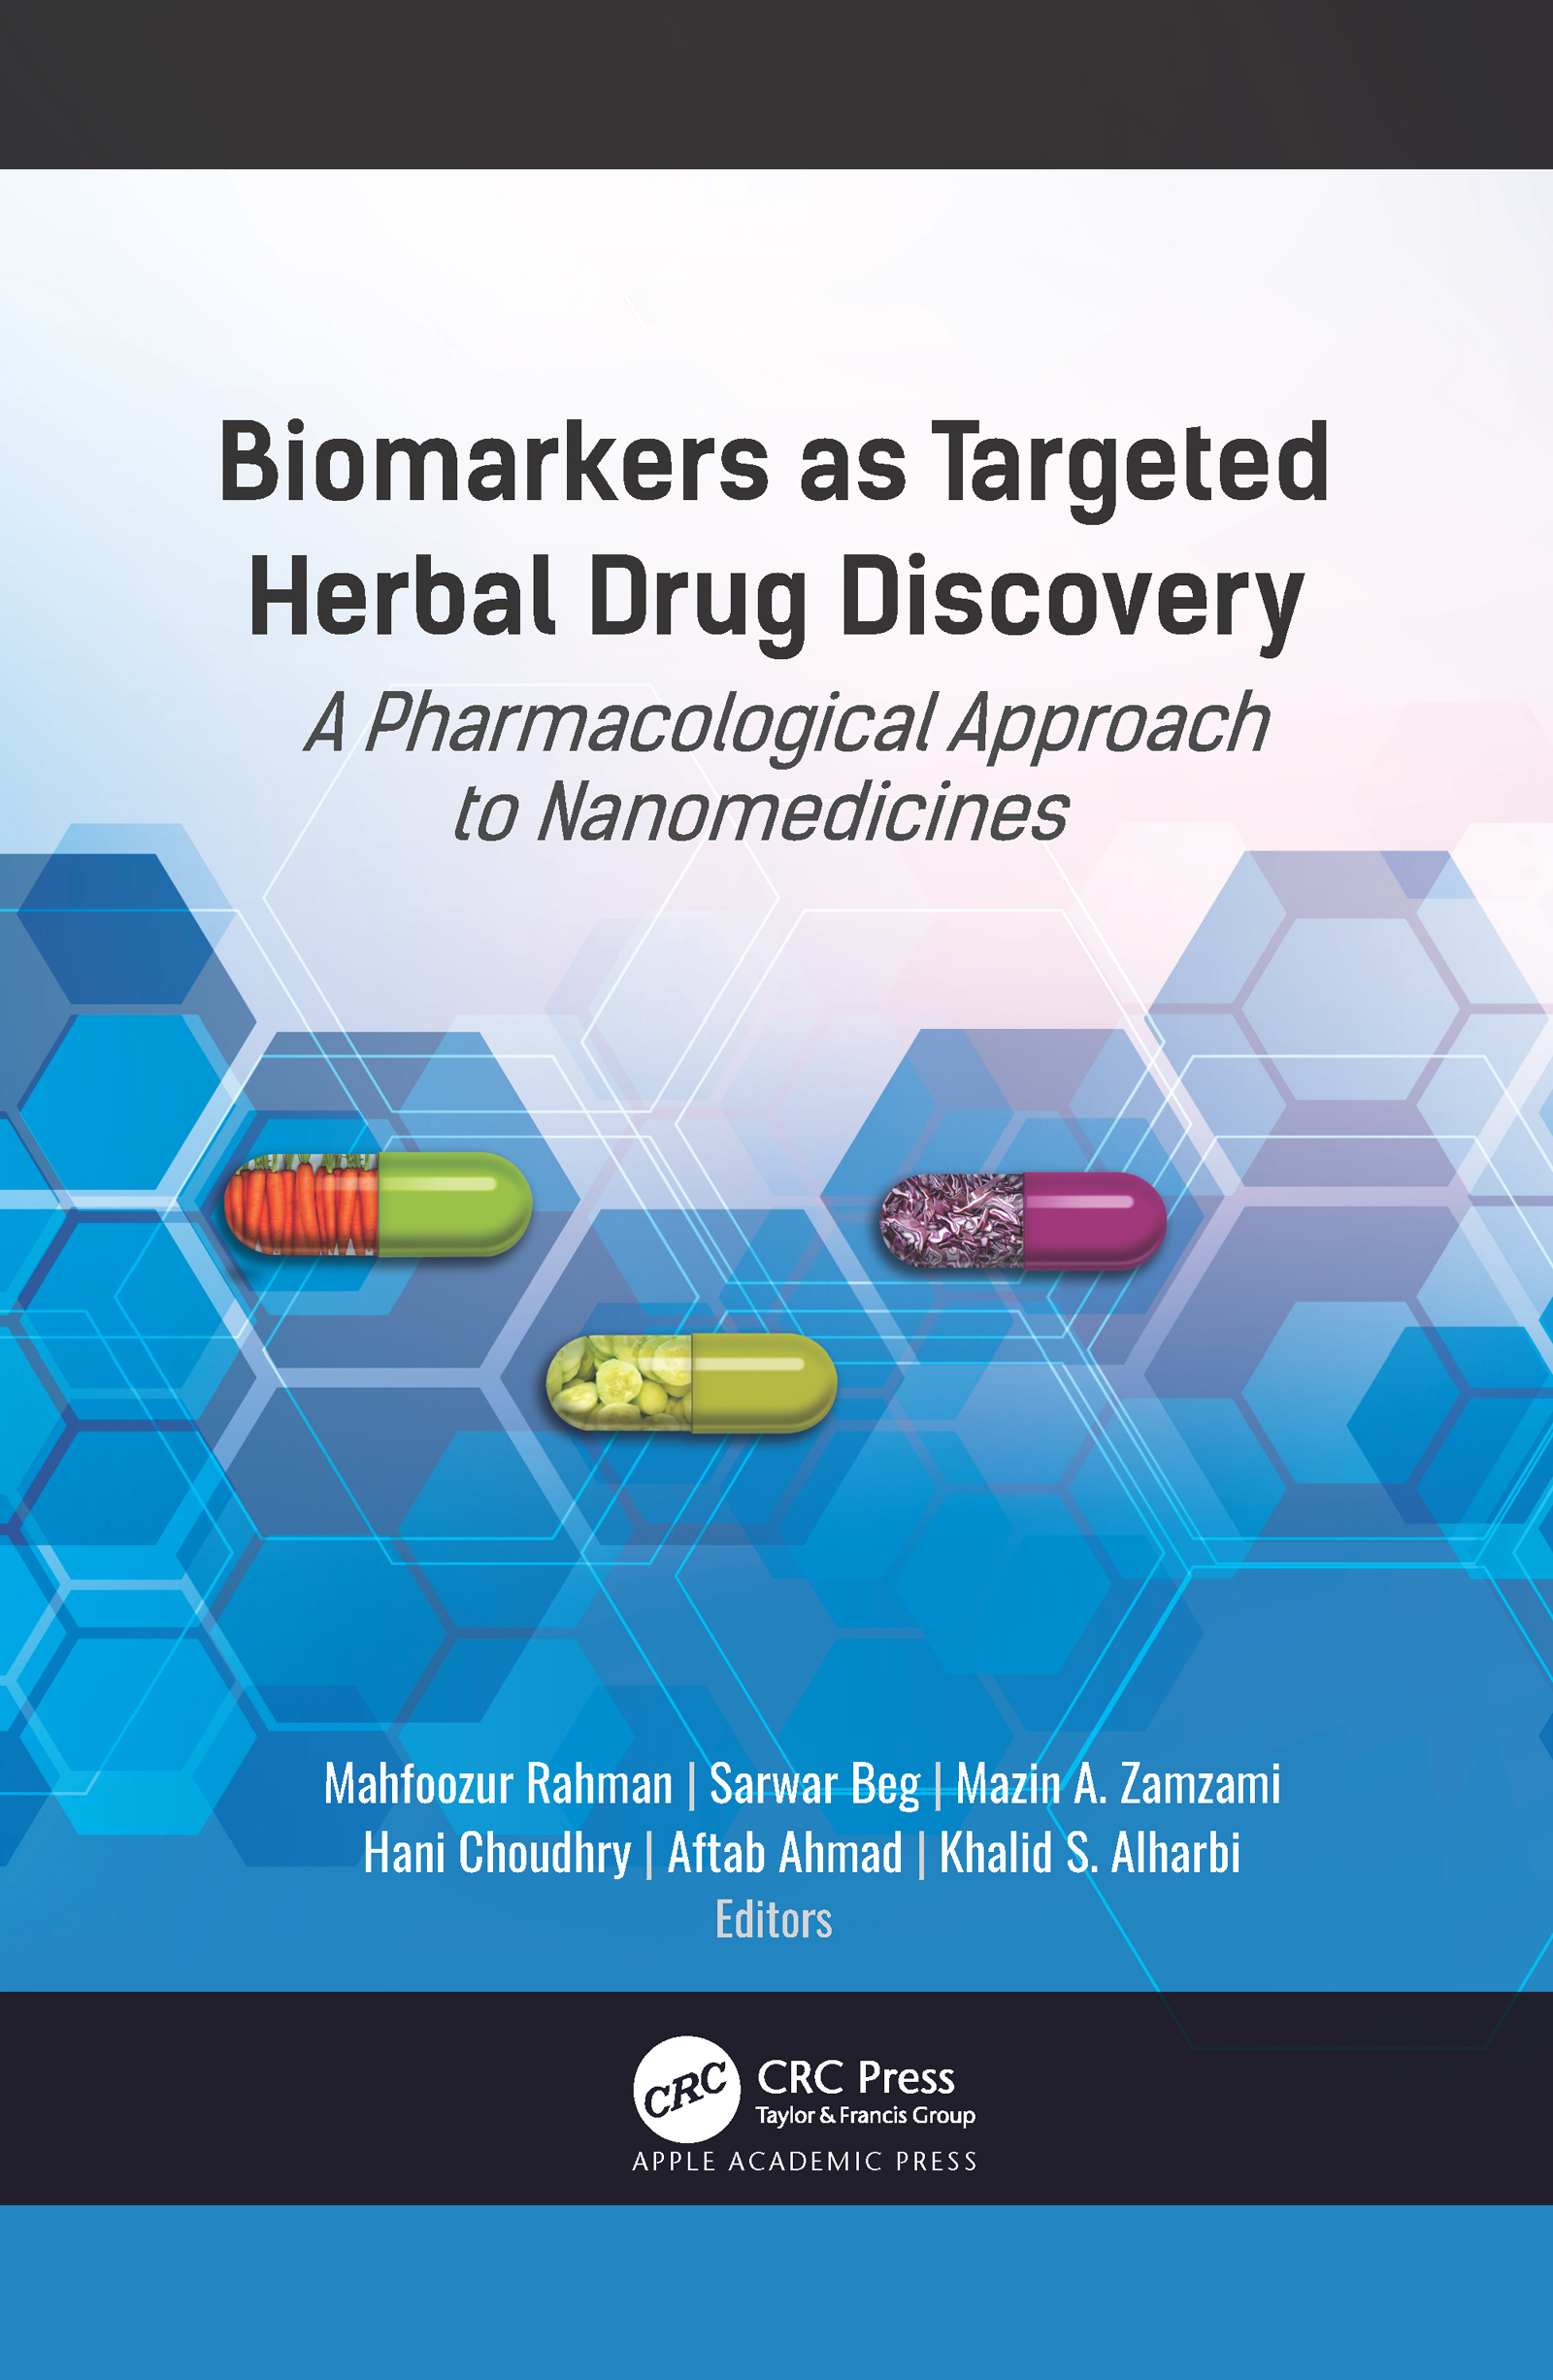 Herbal Anti-Arthritic Drug Discovery Tool Based on Inflammatory Biomarkers